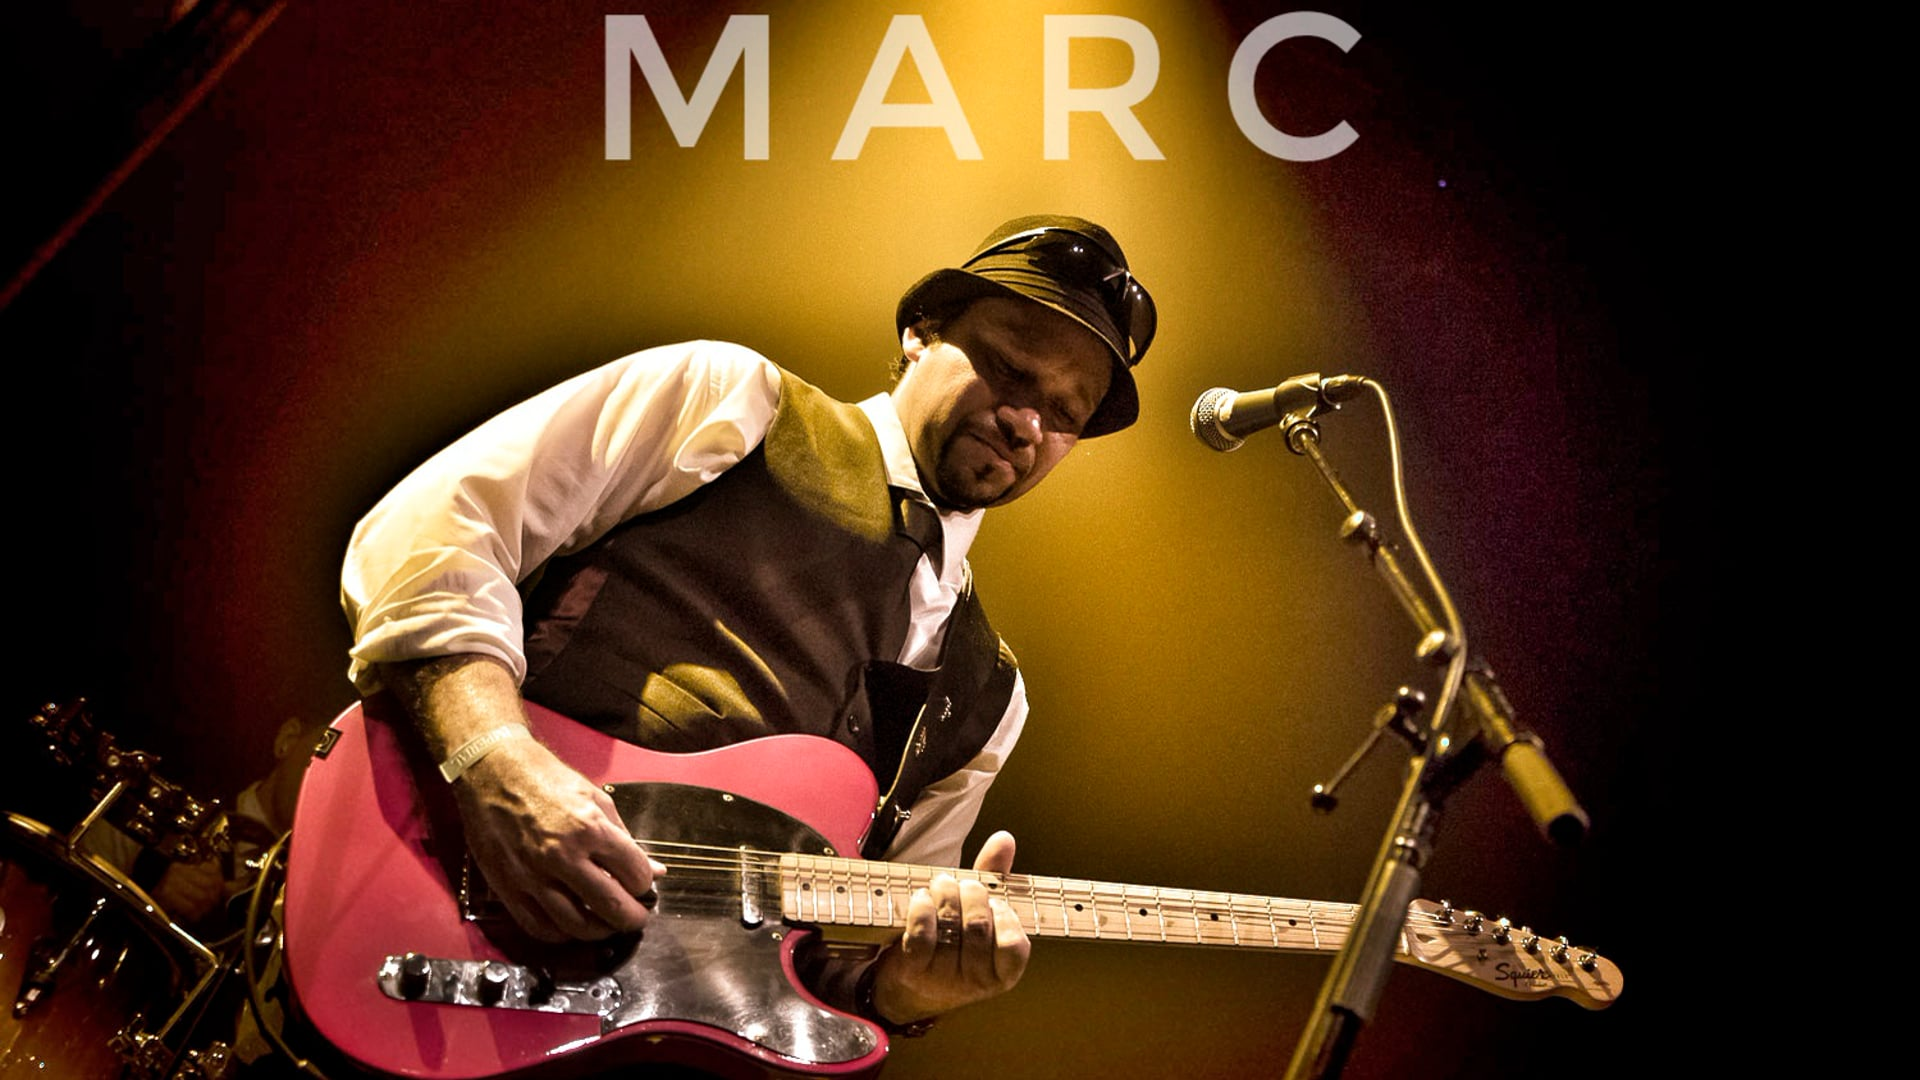 Marc Member Feature